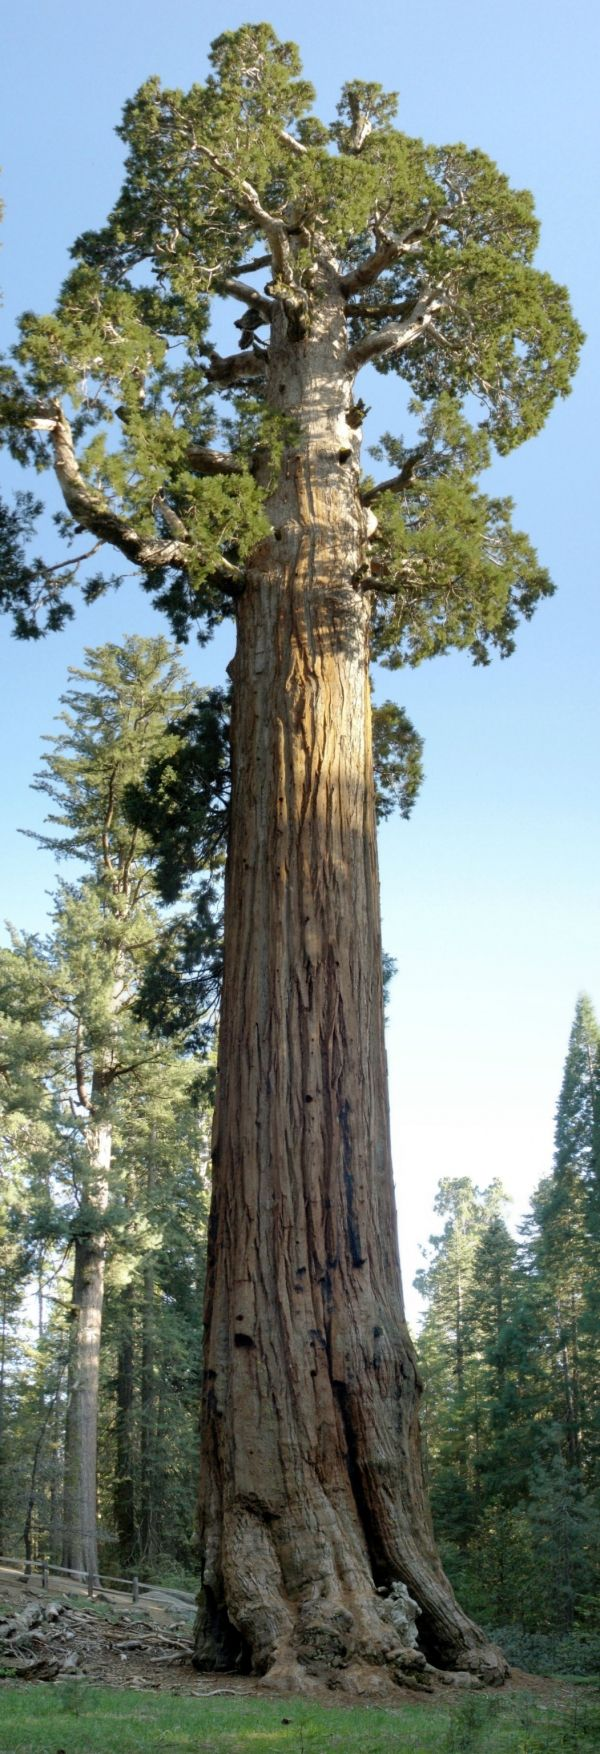 Secuoya gigante 'General Grant' en Grant's Grove, Kings Canyon National Park, Estados Unidos